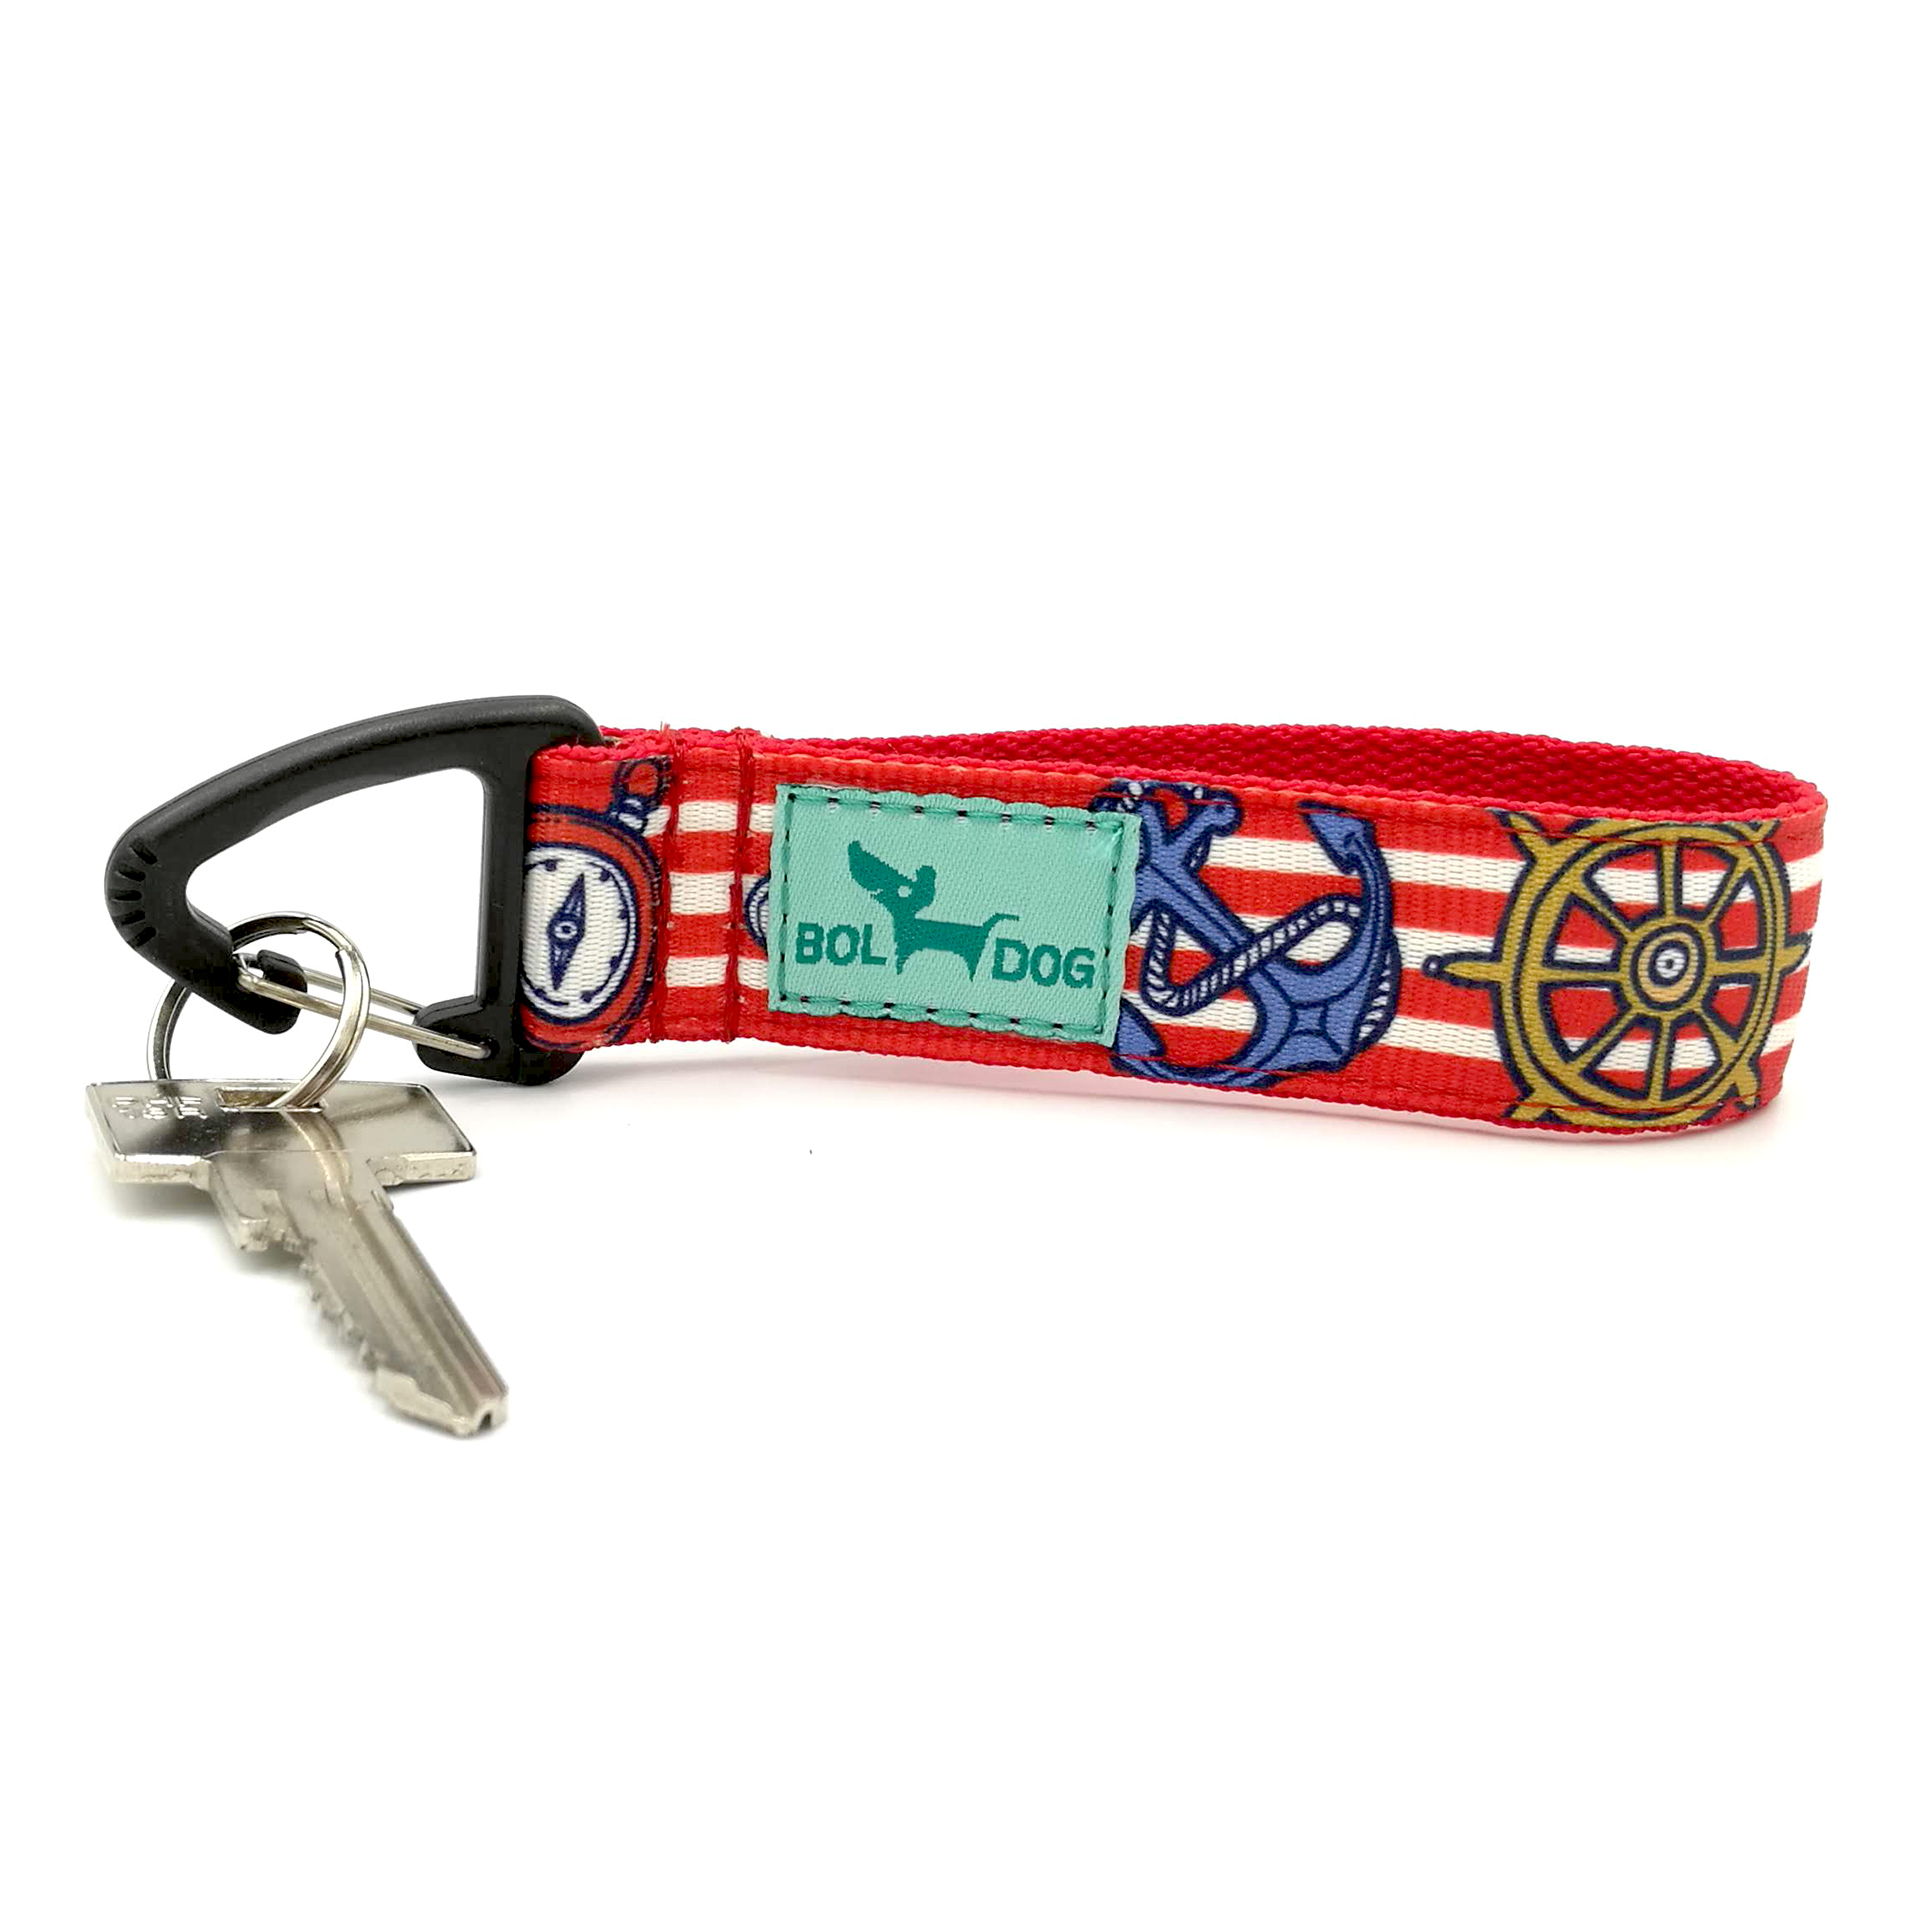 Marine red key holder